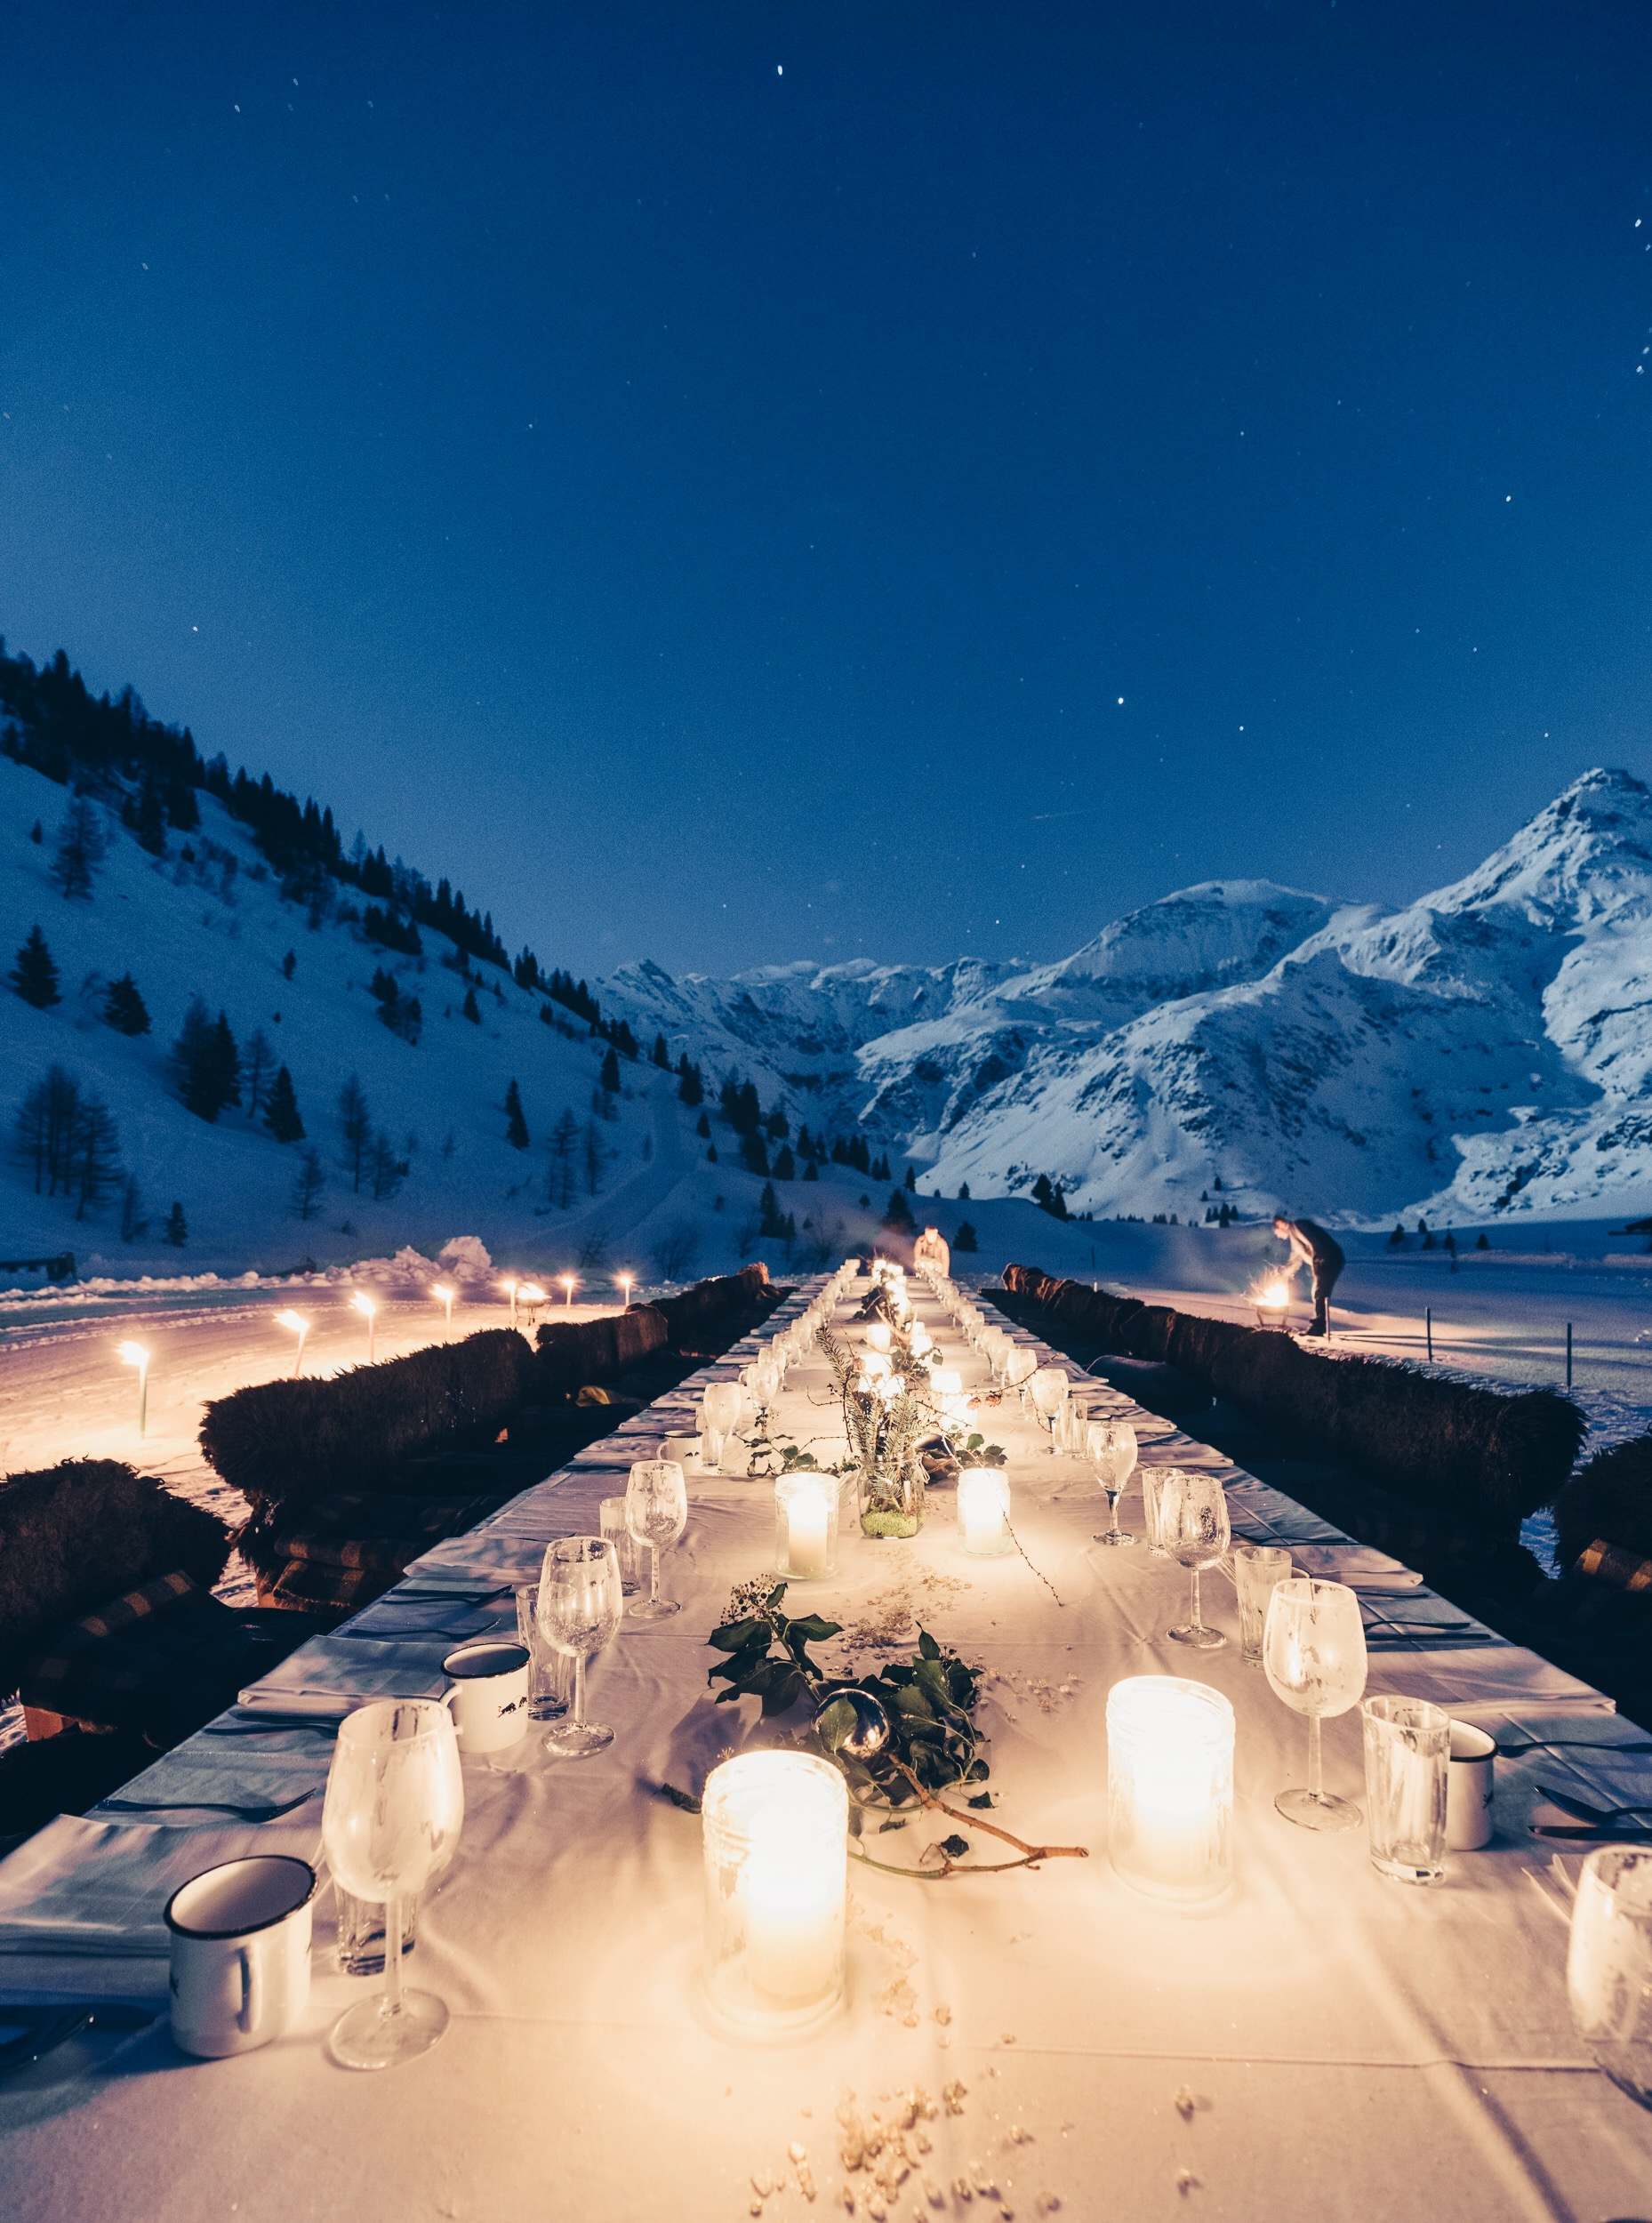 FULL MOON DINNERApril 18, 2019 - A DINING EXPERIENCE DESIGNED BY STUDIO5640, WEITBLICK & TOURISM BAD GASTEIN// photo by Hannah Bichay